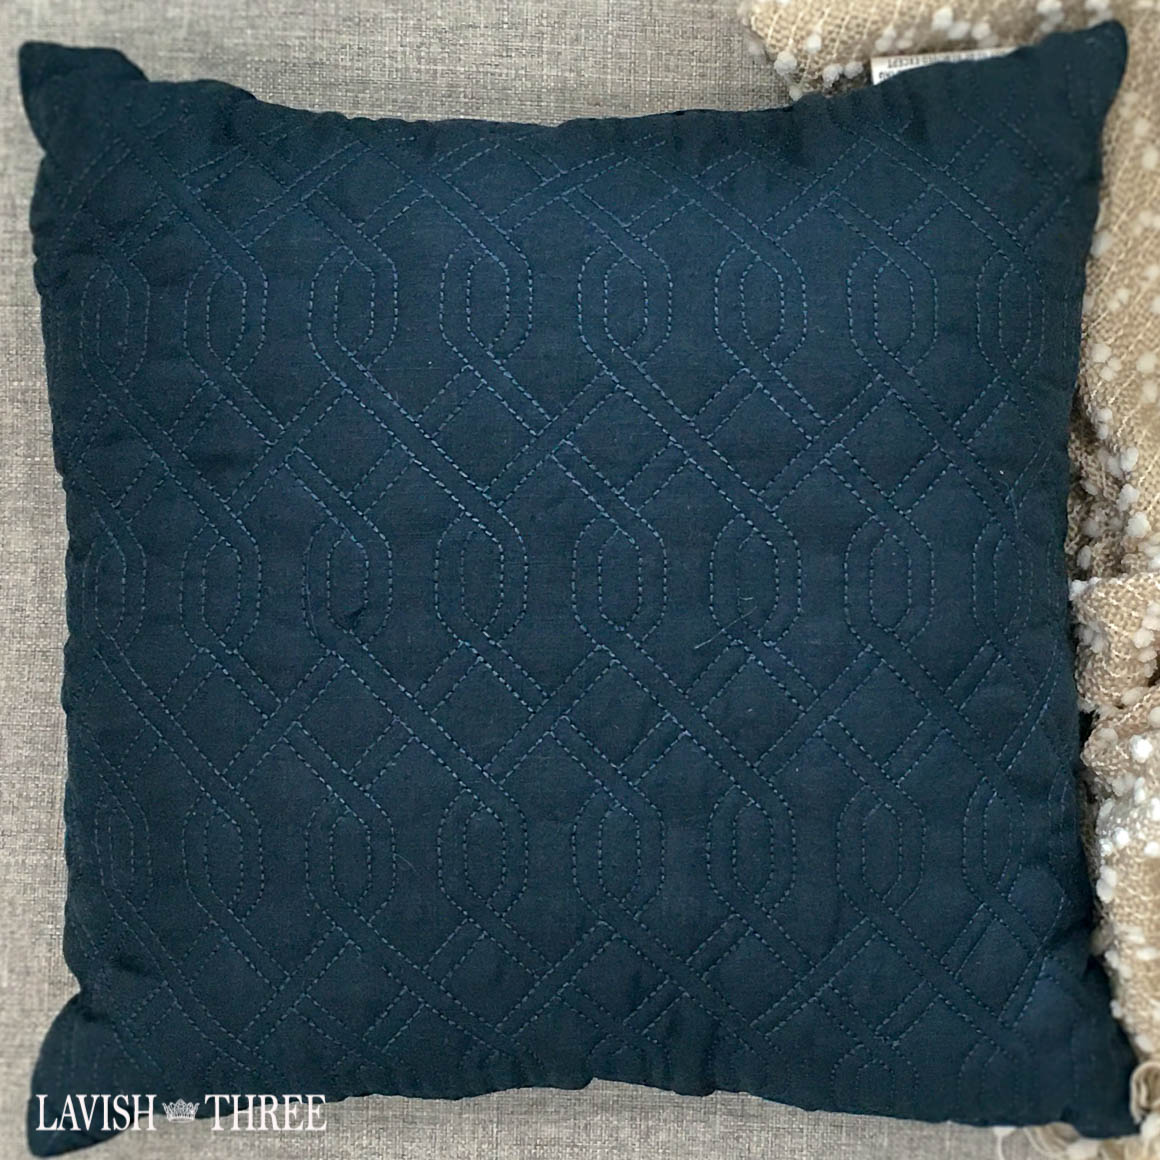 Navy blue square accent throw pillows Lavish three 3